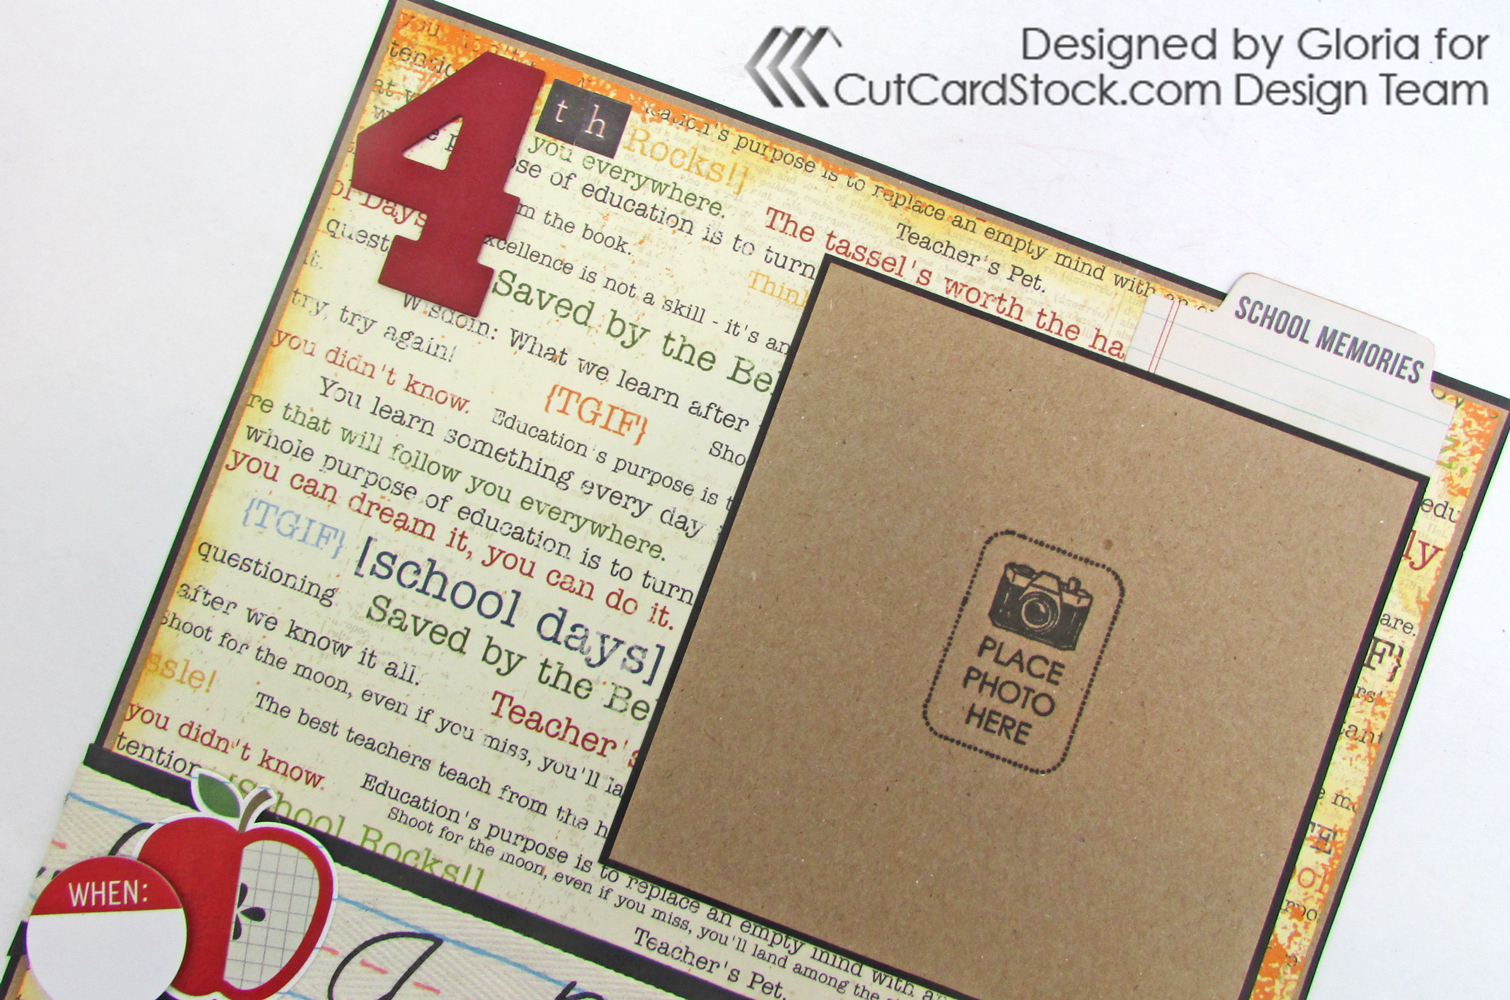 Trim Brown Bag Kraft Cardstock To 7 8 X And Attach The Black Base Panel Printed Paper 3 4 Layout